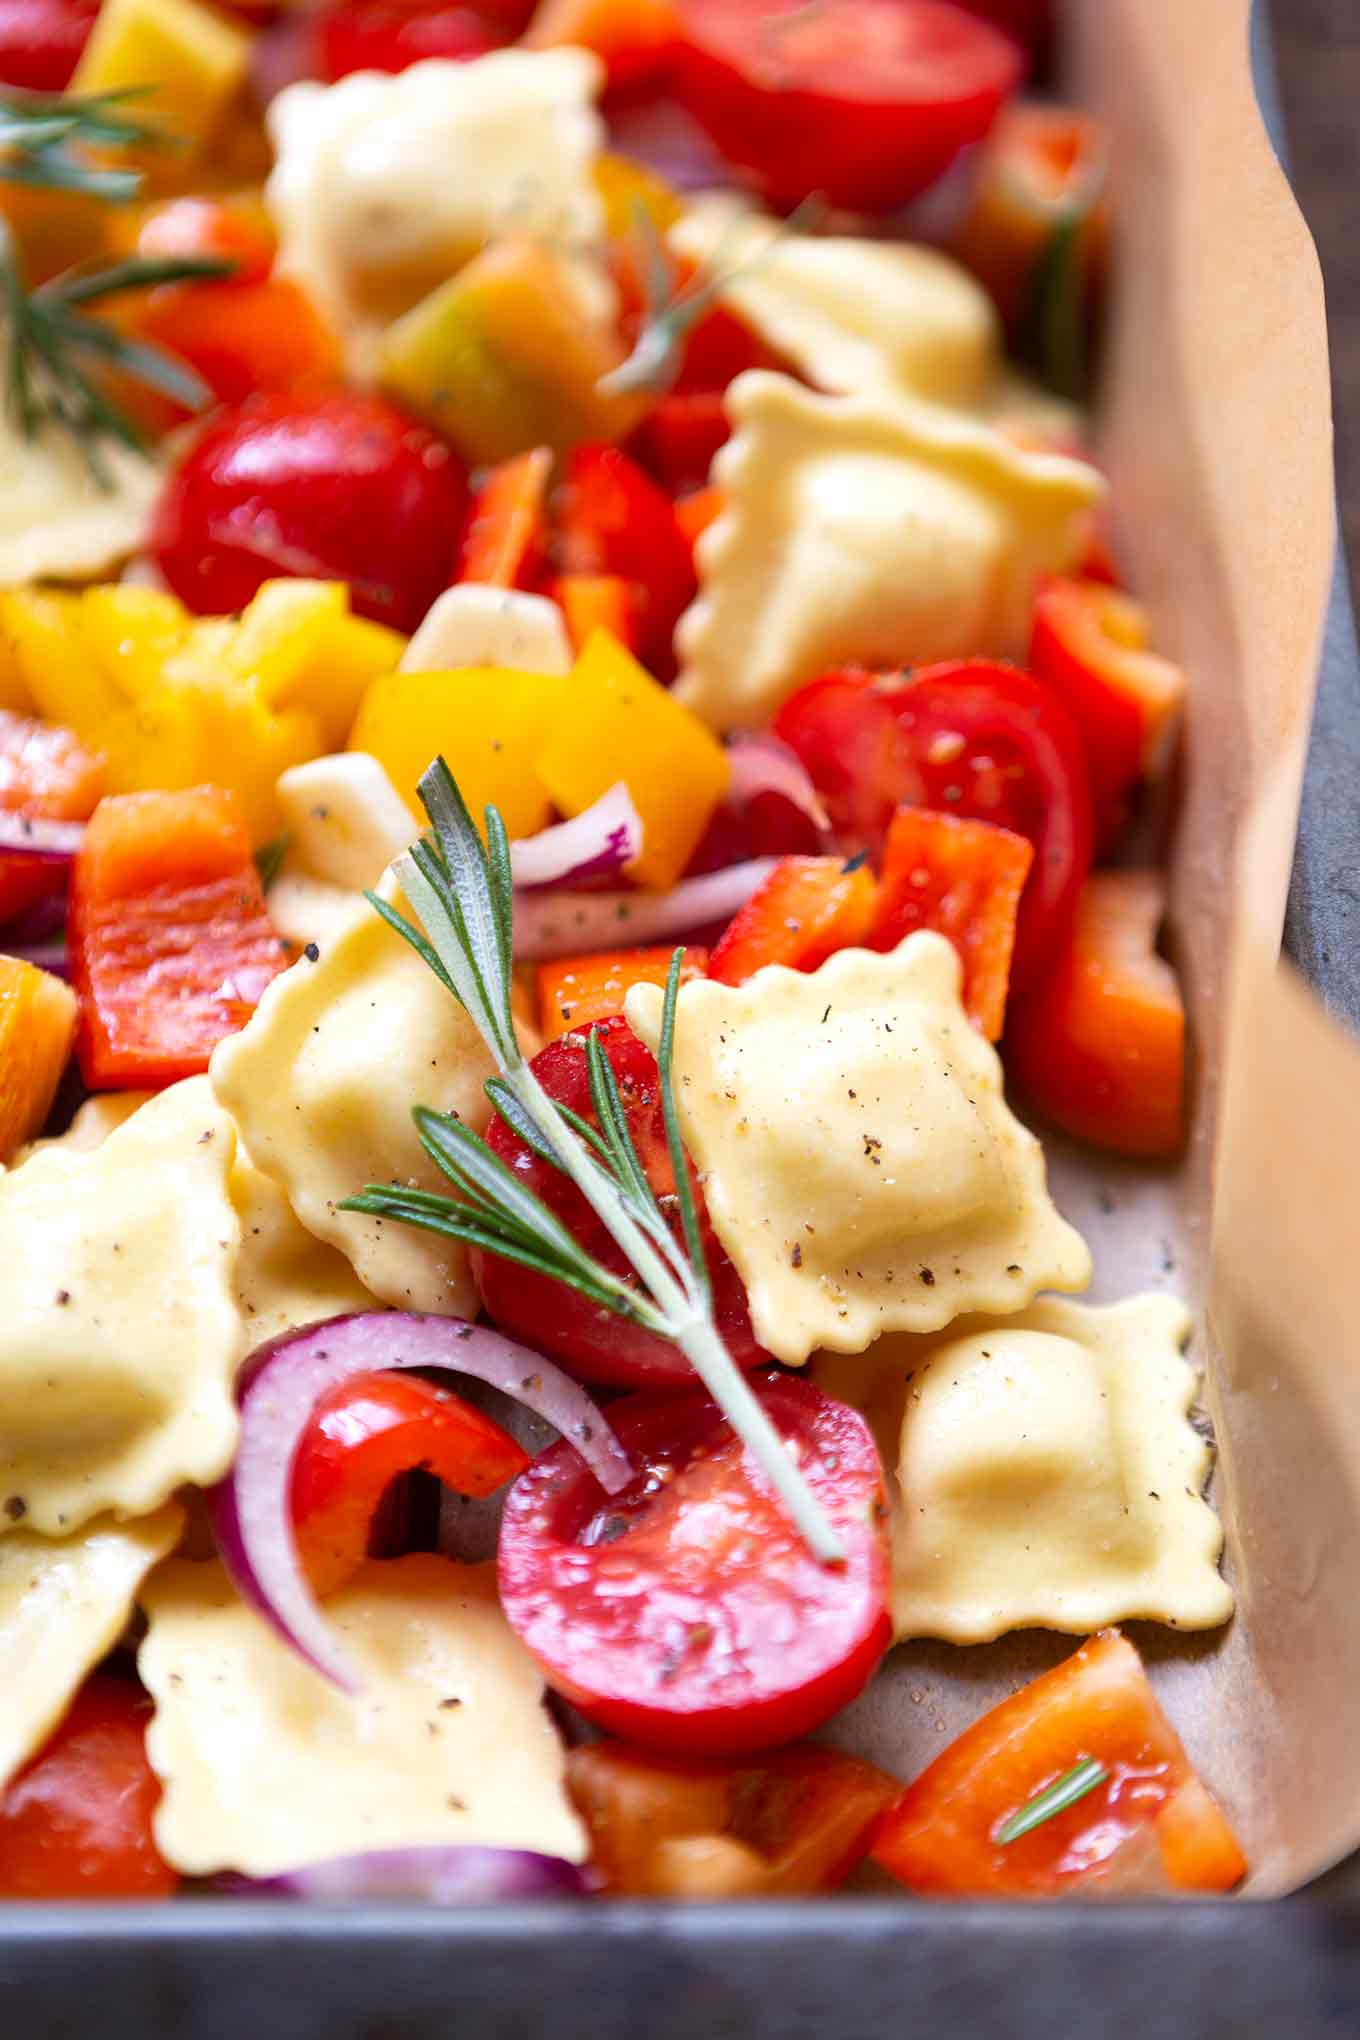 A tin ravioli with tomatoes, peppers and rocket. This quick and easy recipe is the hit of any fancy cook days, definitely try it! - Kochkarussell.com #einblechrecipe #schnellundeinfach # Feierabendküche #kochkarussell